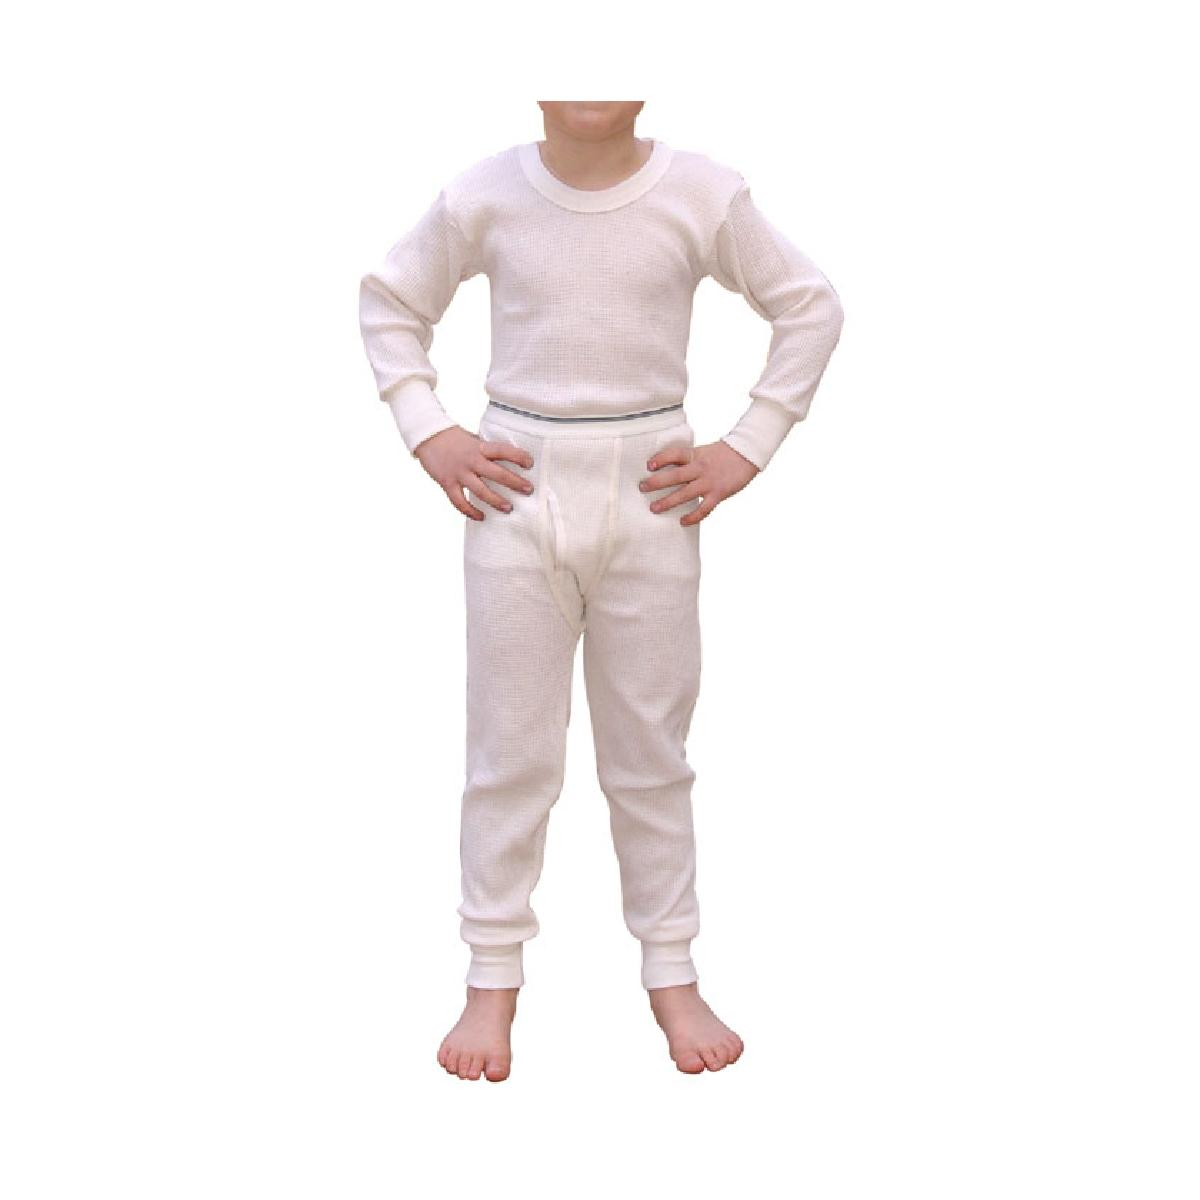 Boys Indera Thermal Underwear Set, Includes Tops & Bottoms by Indera Mills